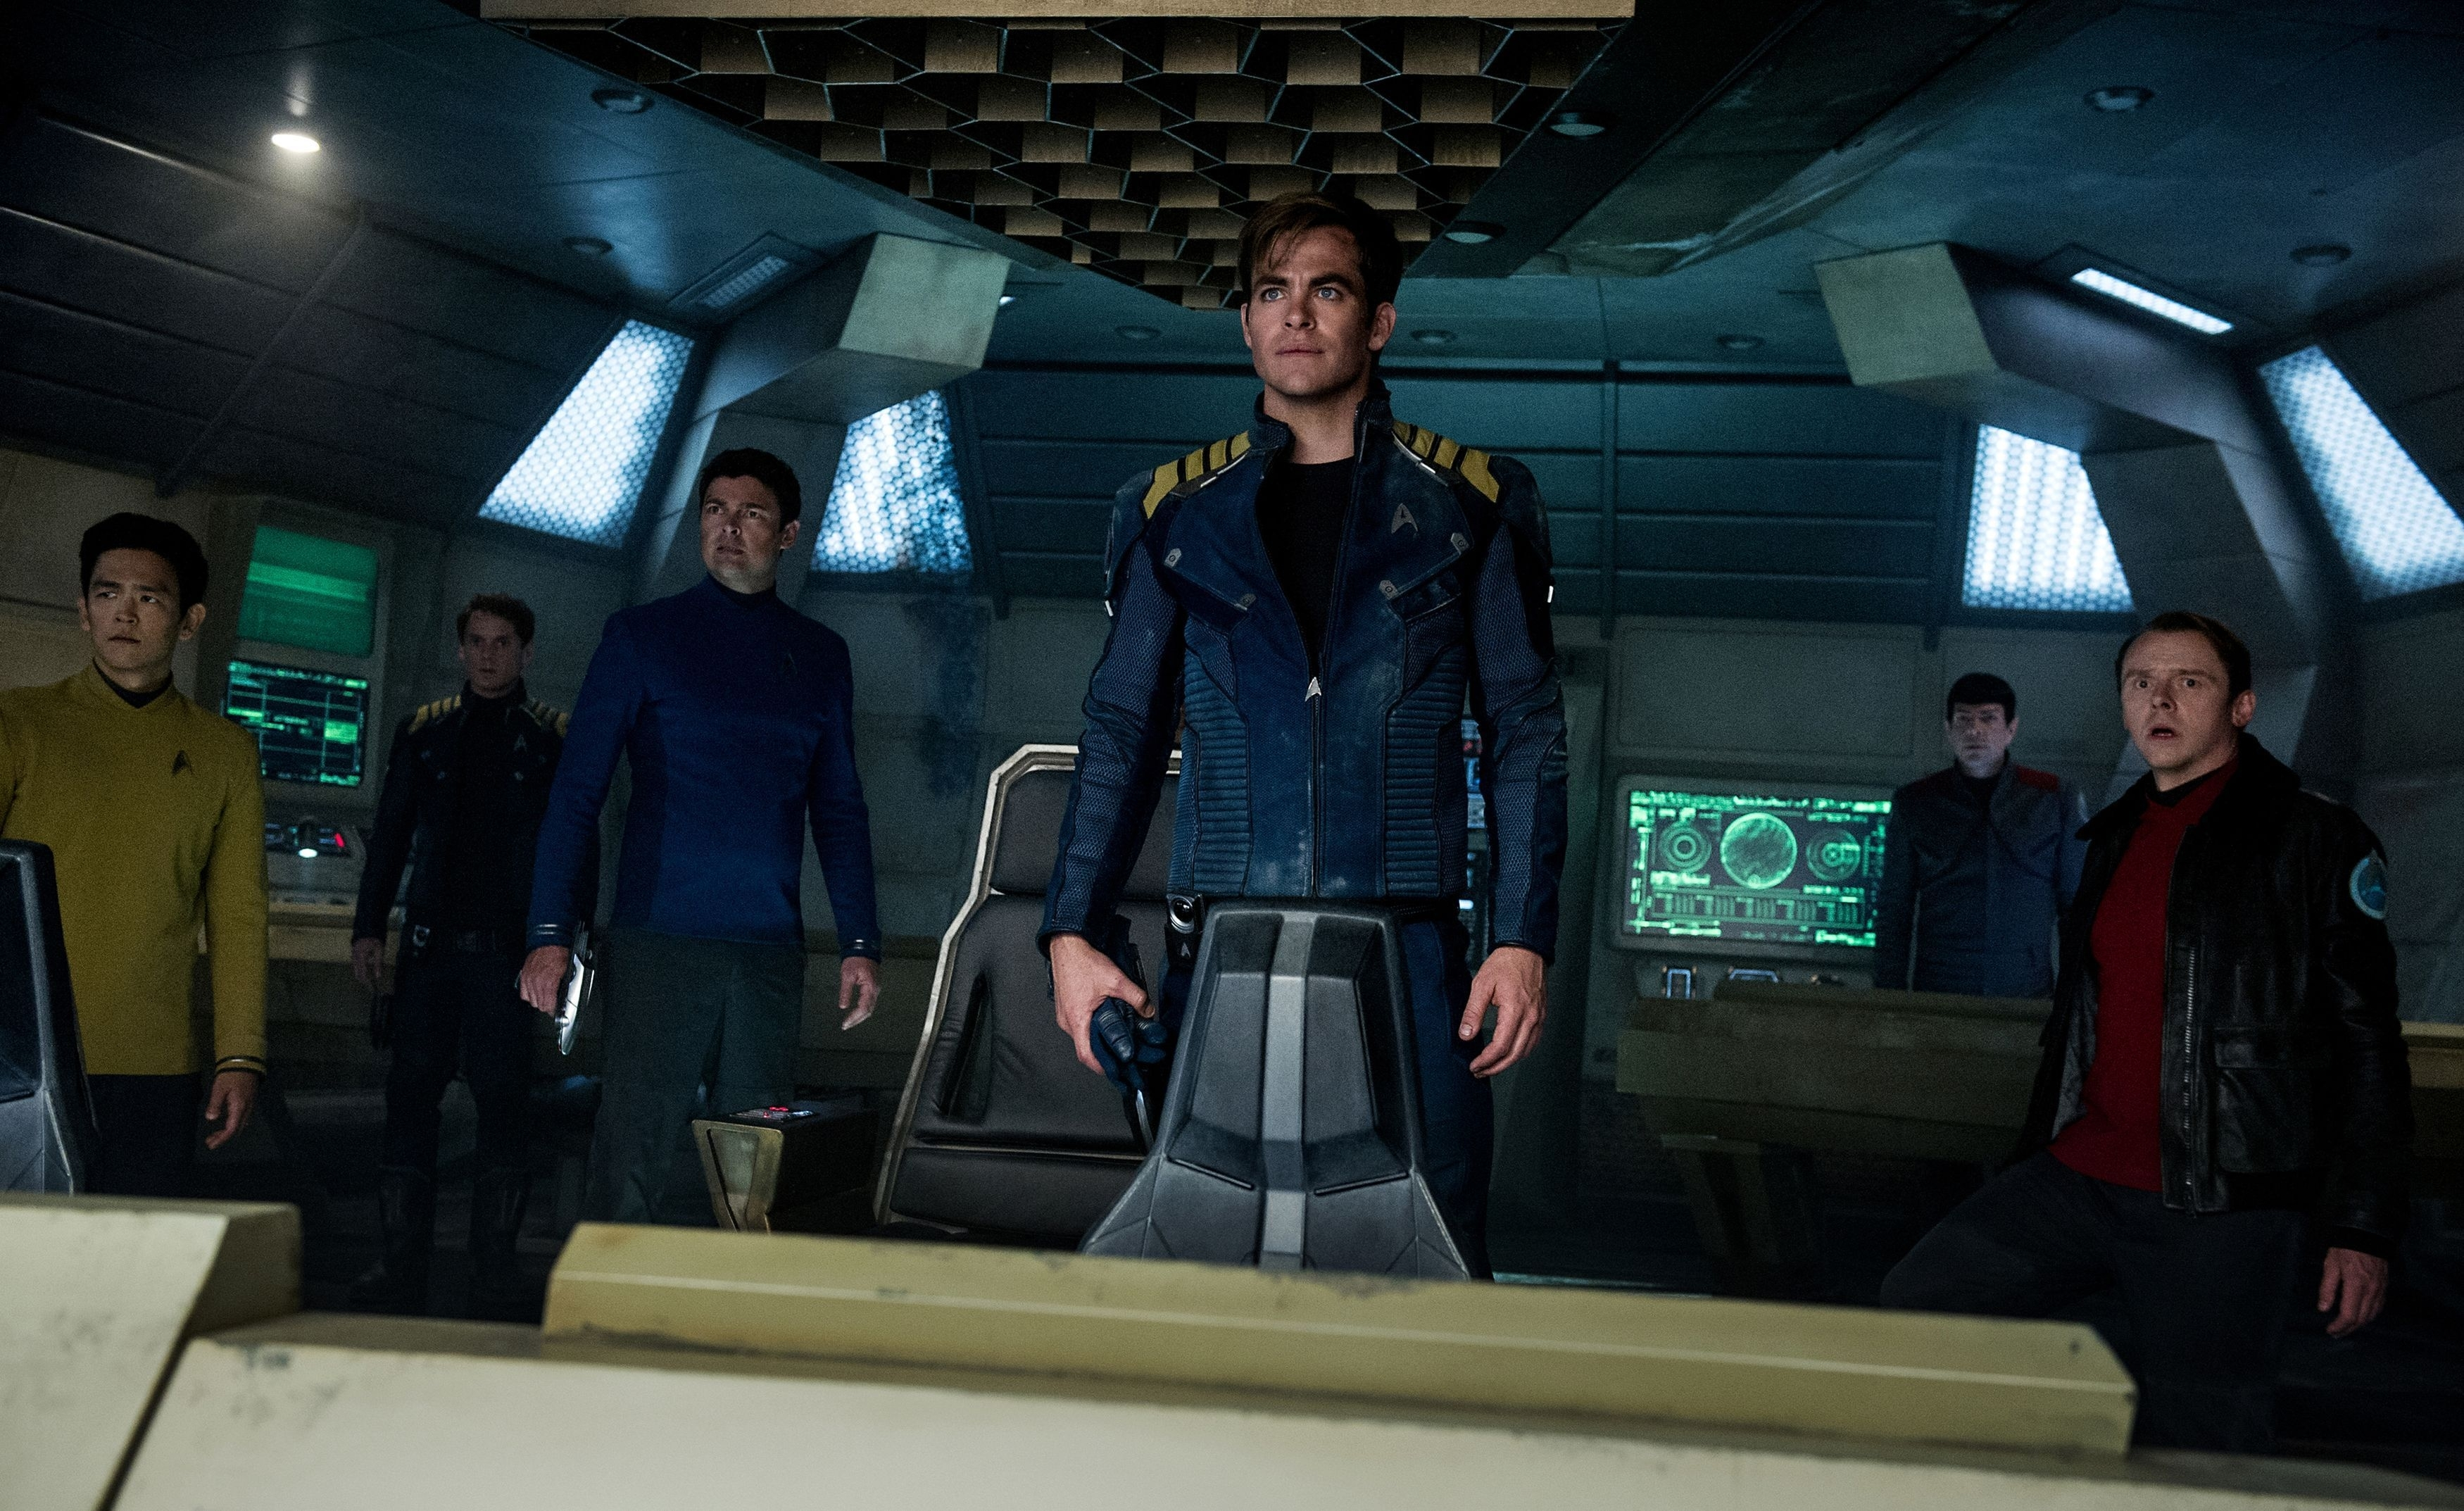 Chris Pine plays Captain Kirk in the new franchise